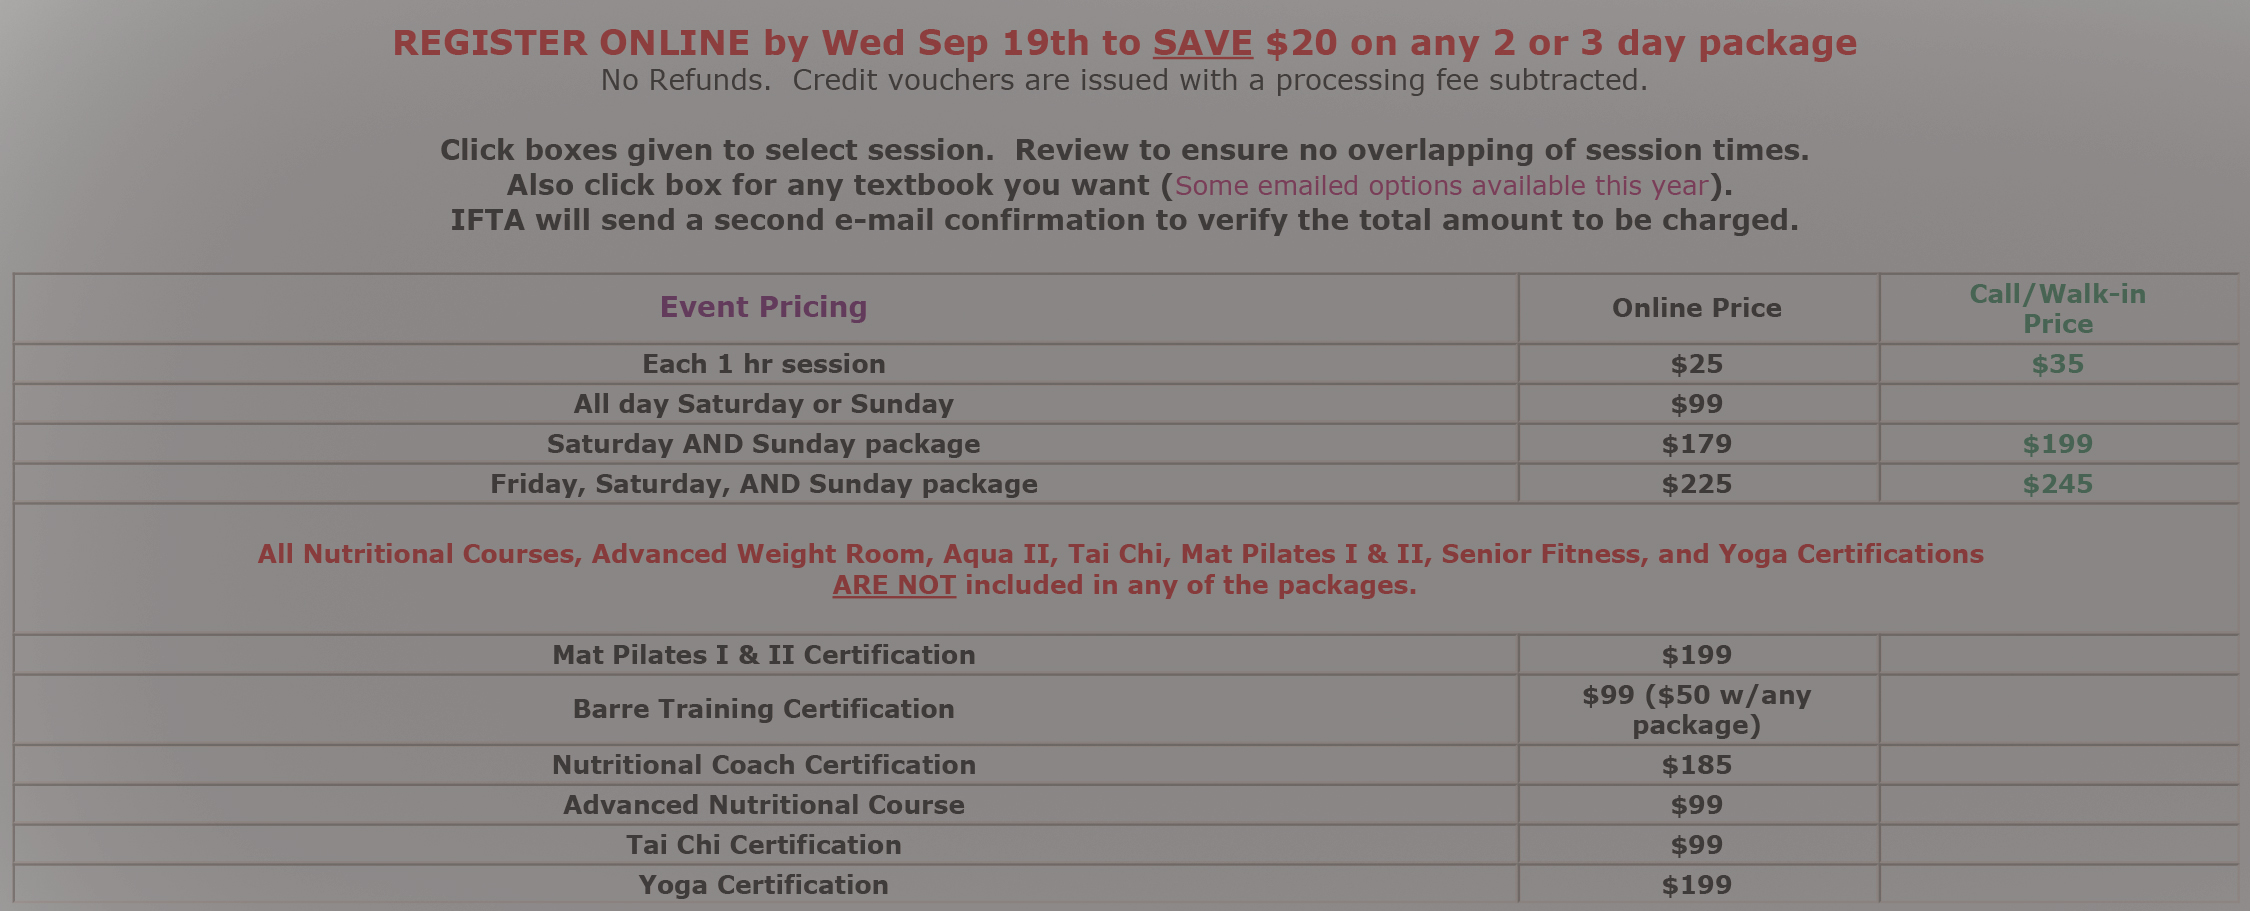 Classic Registration Old Website Version Interactive Fitness